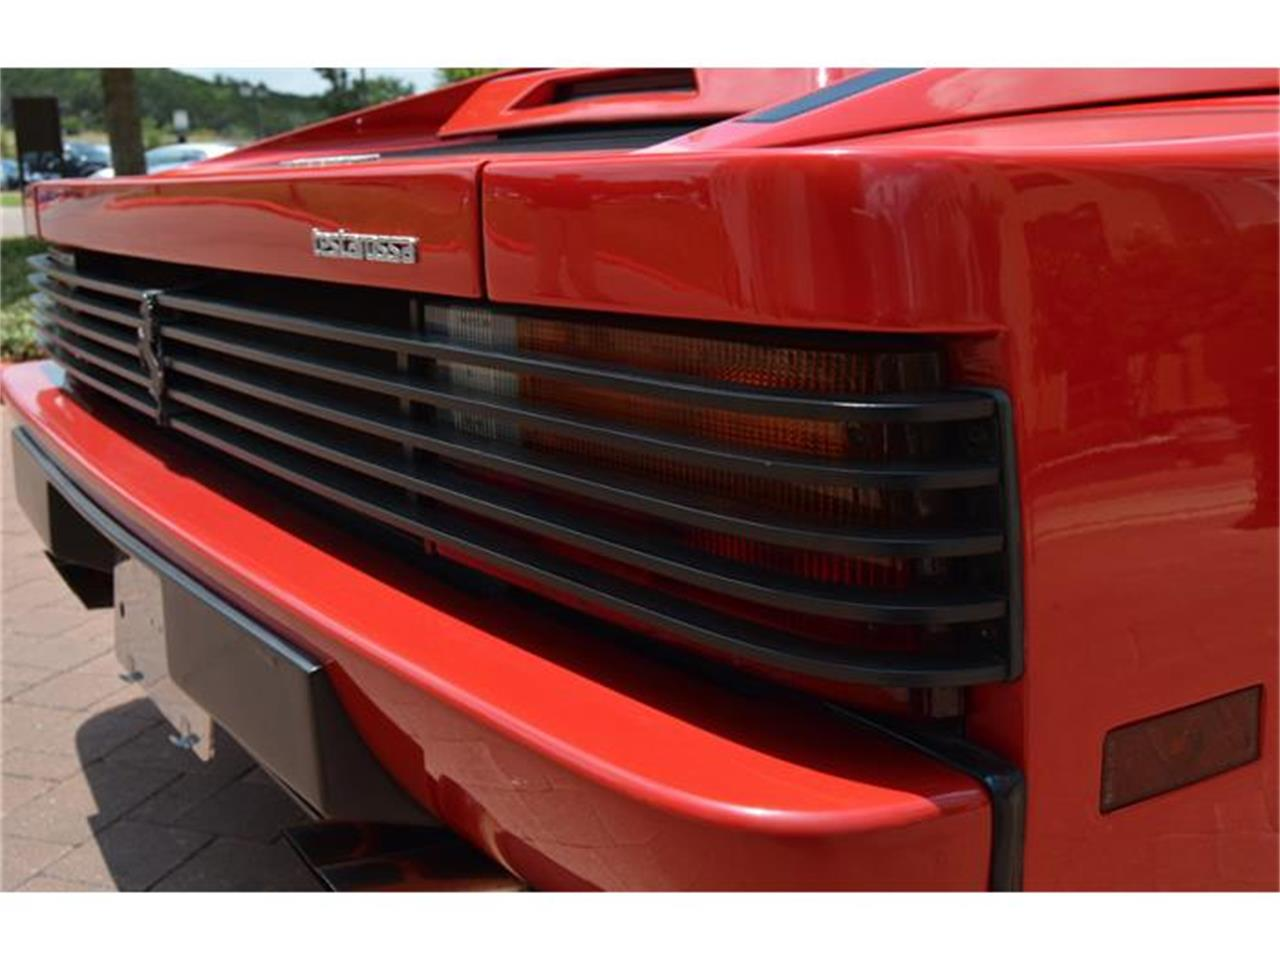 Large Picture of 1990 Ferrari Testarossa located in Texas Auction Vehicle Offered by LT Car Holding - GMC4